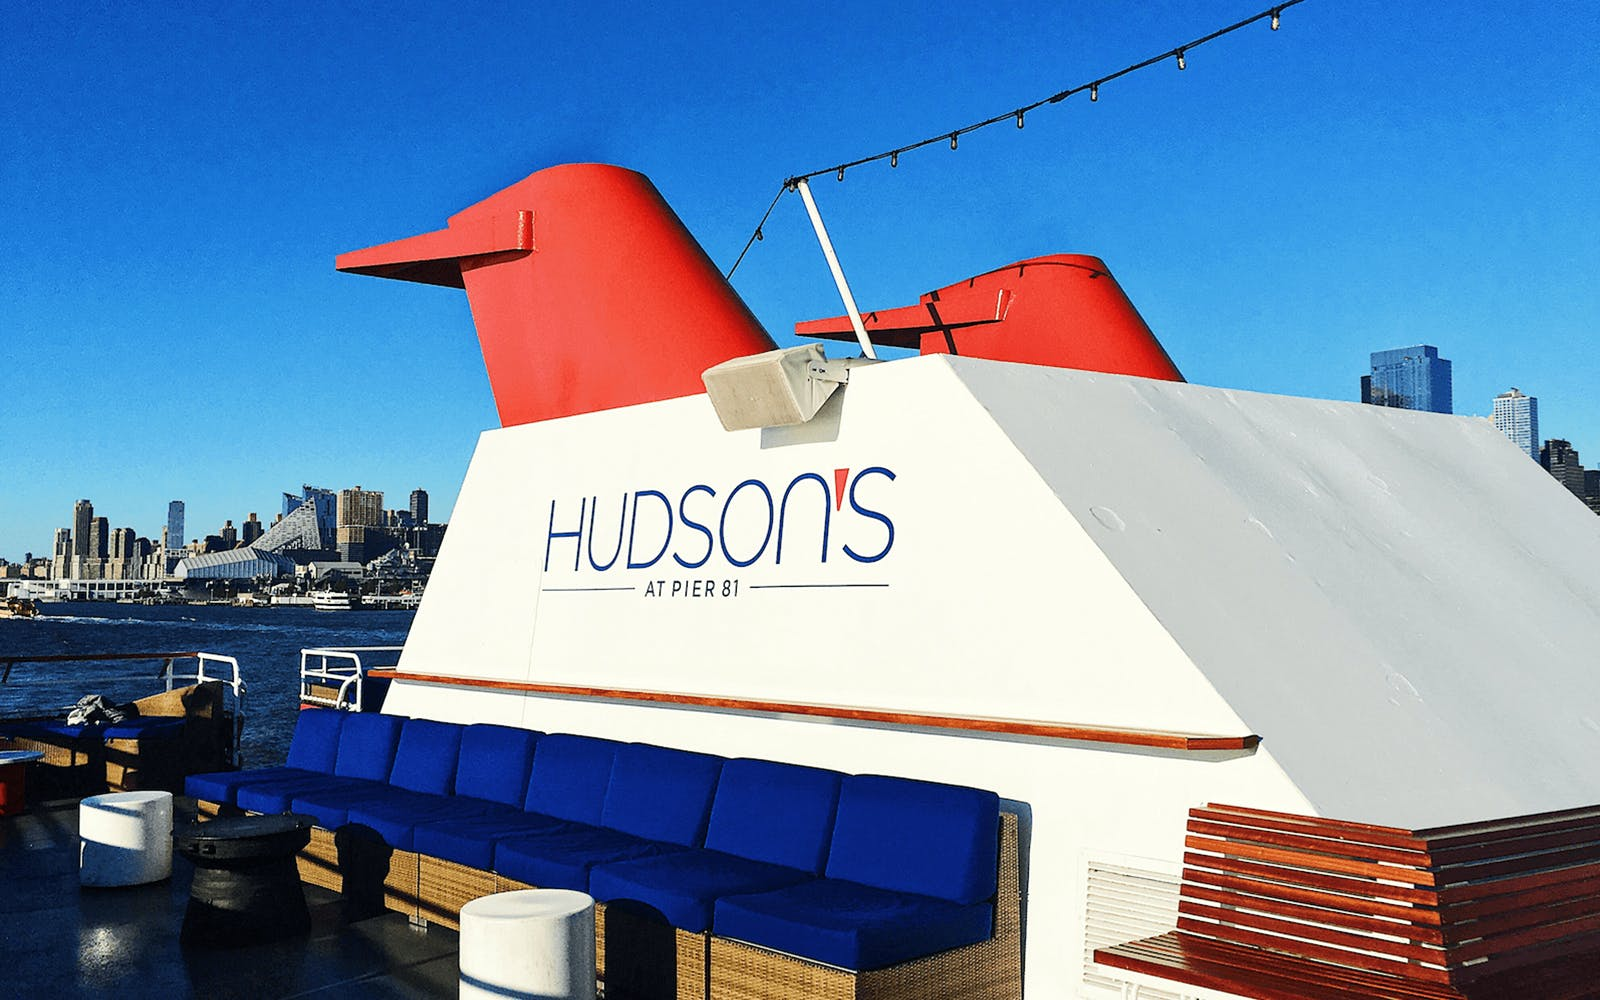 Hudson River Sunday Brunch Cruise